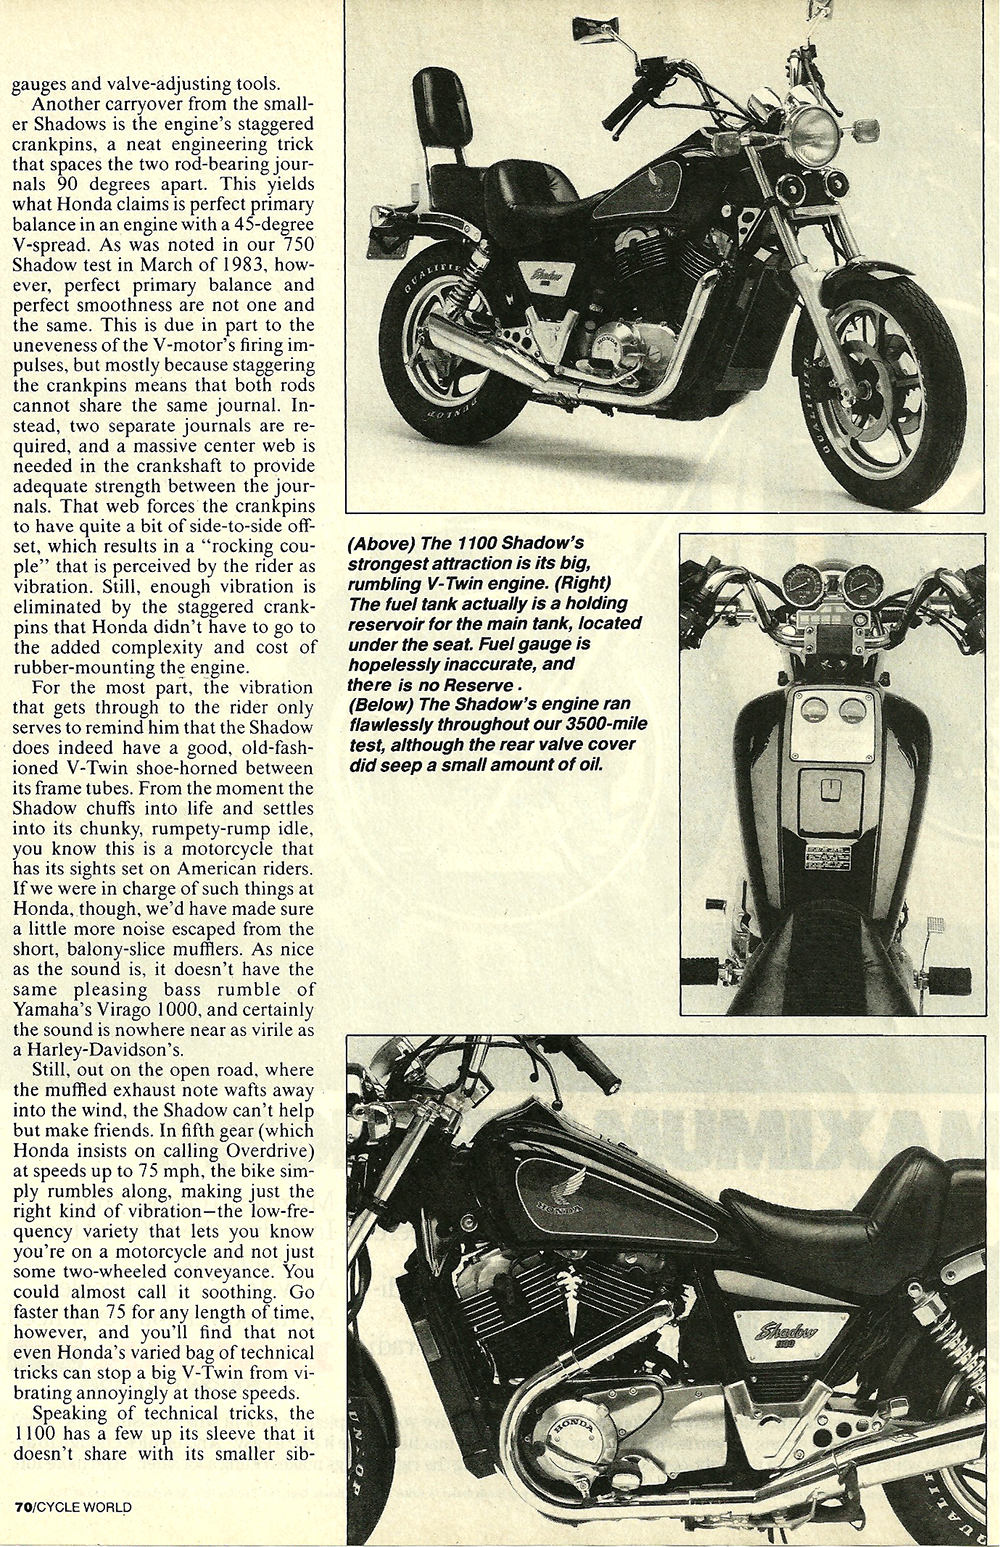 1985 Honda VT1100 Shadow road test 04.jpg